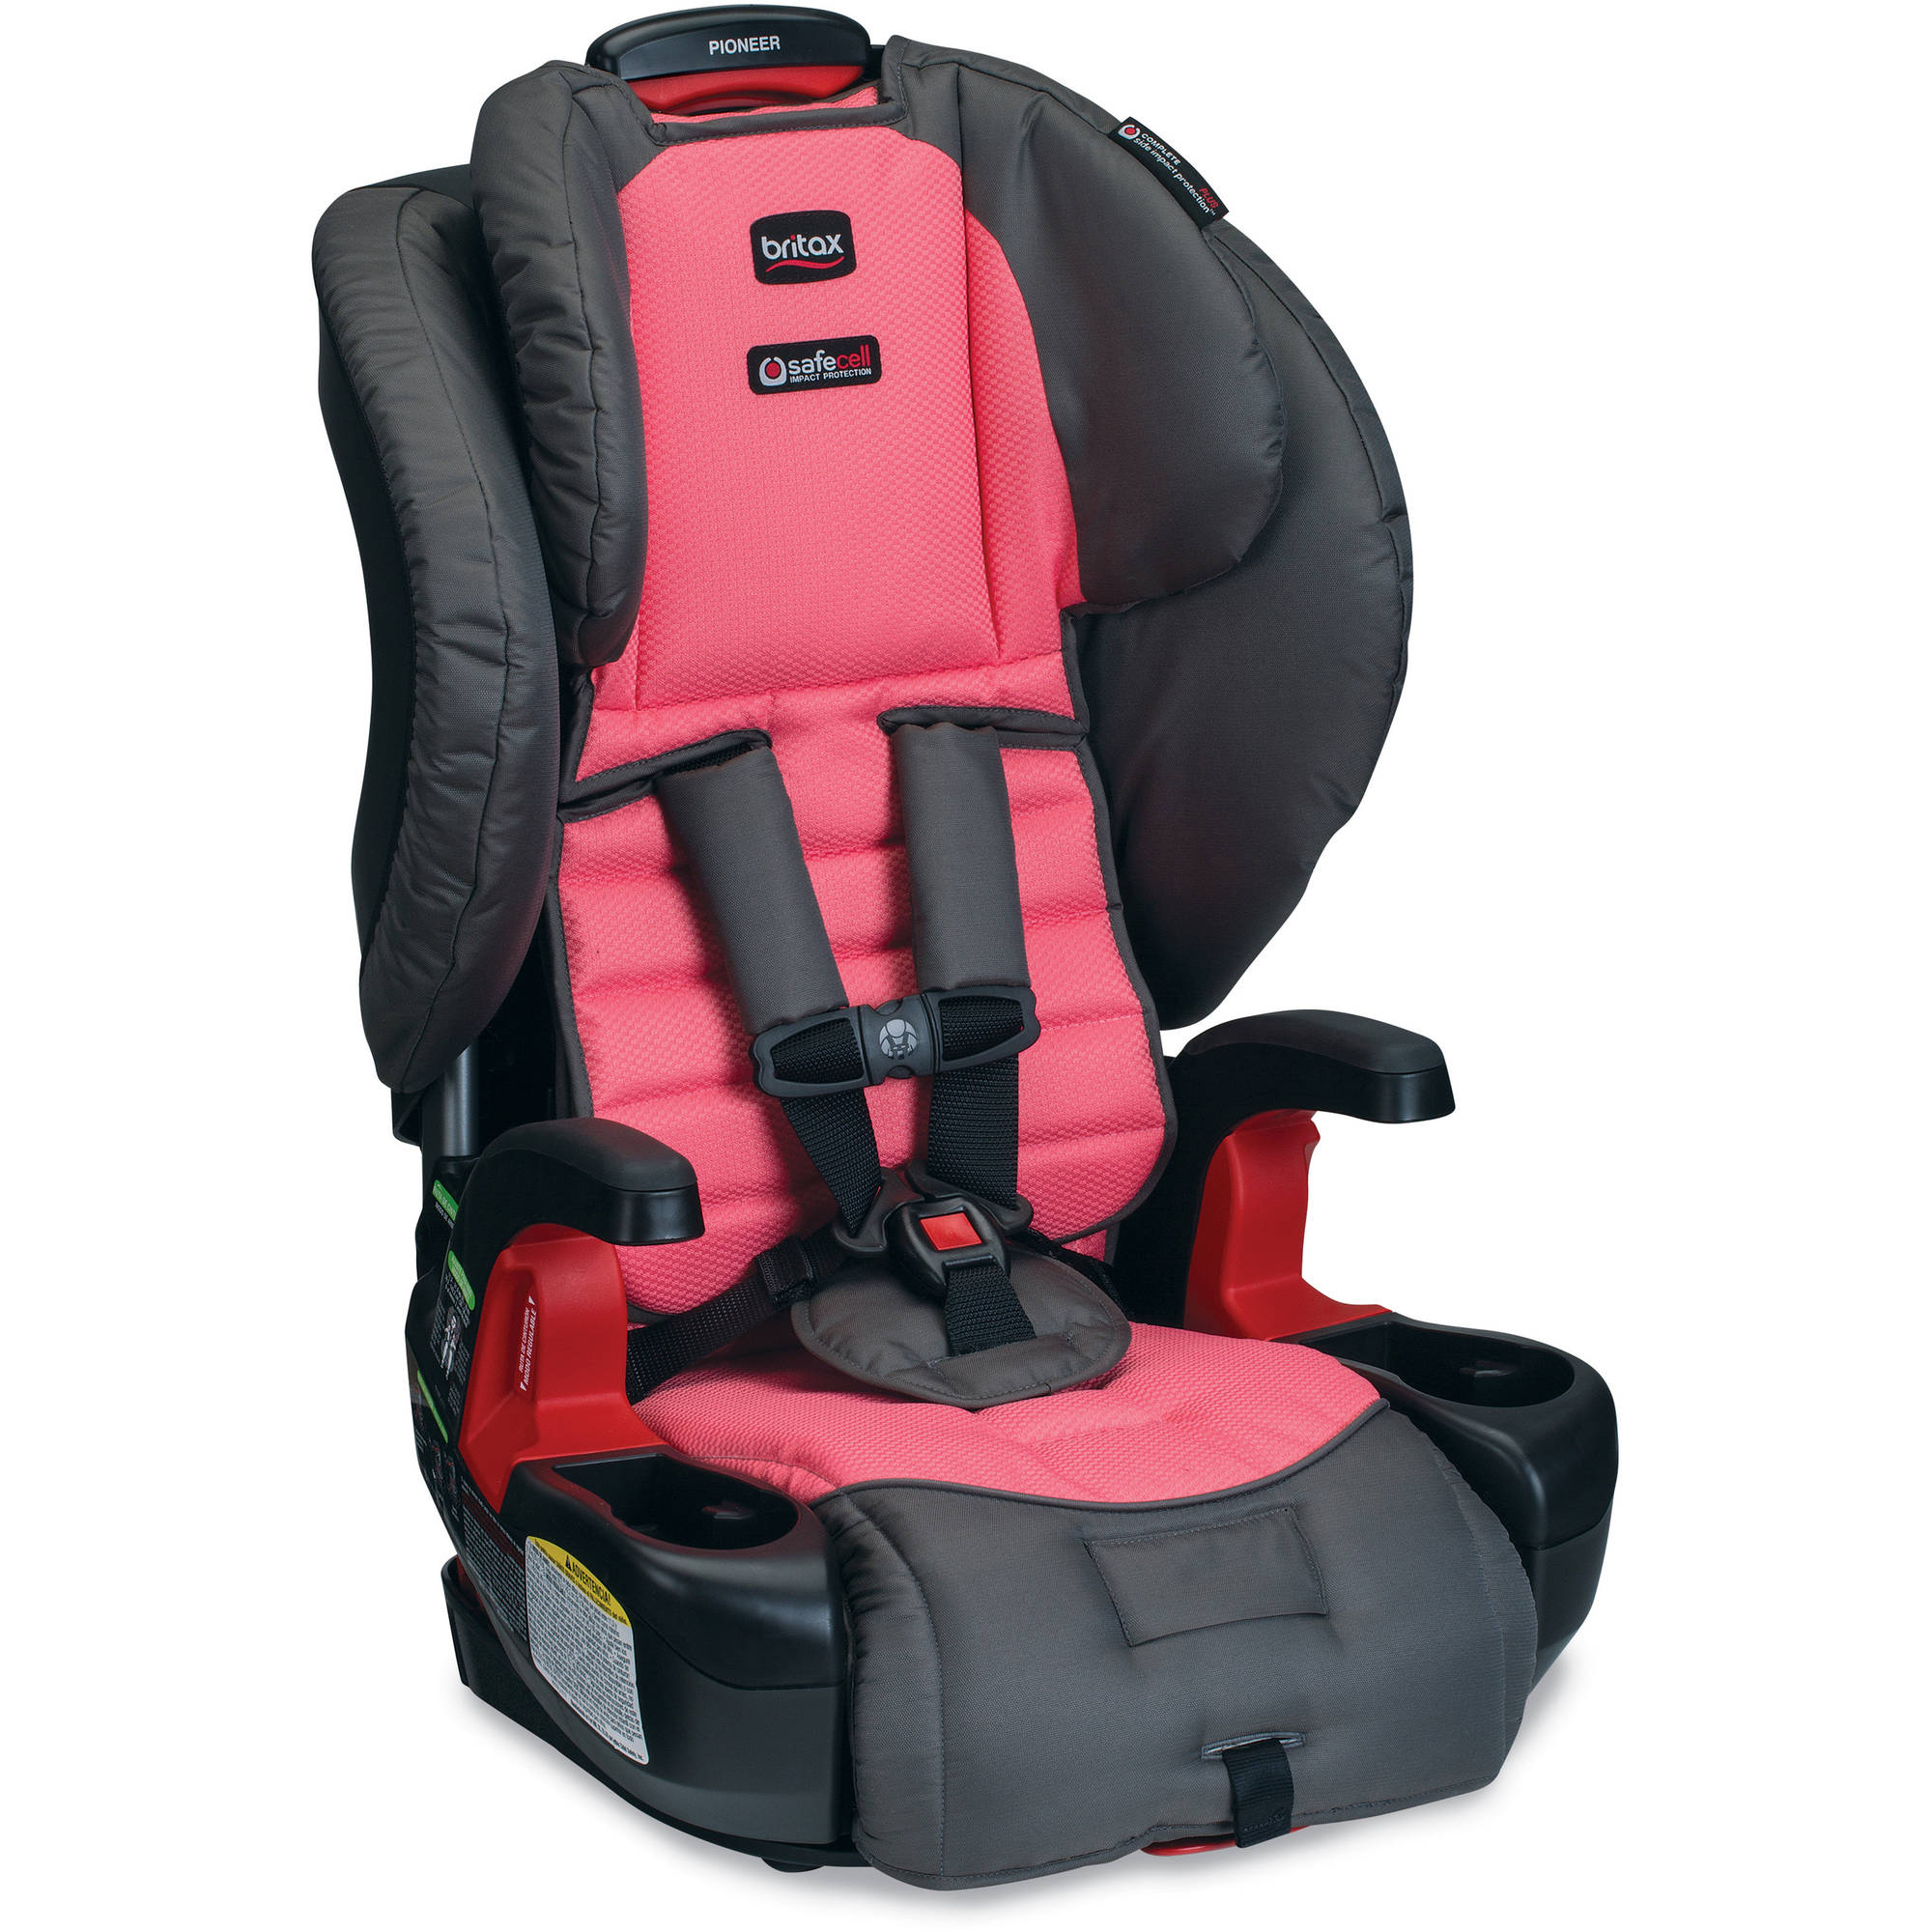 Britax Frontier Seat Cover Replacement Velcromag